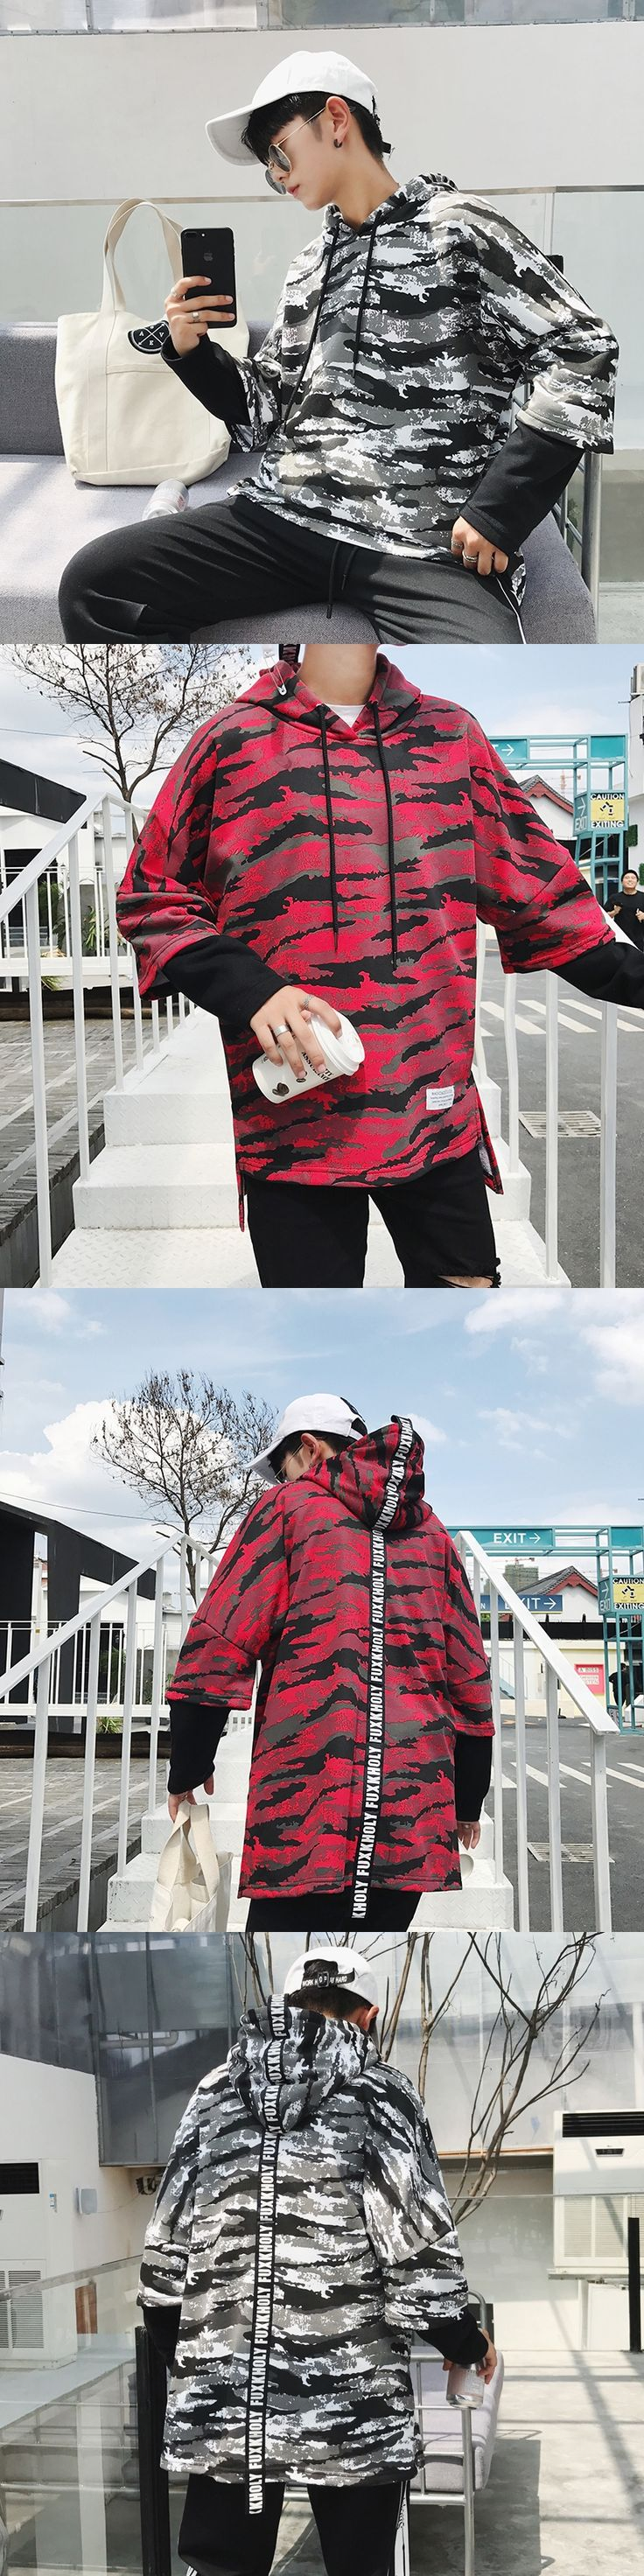 2017Autumn New lovers student camouflage coats Loose men popular fashion causal brand cotton hoodies Hip-hop style clothes M-5XL